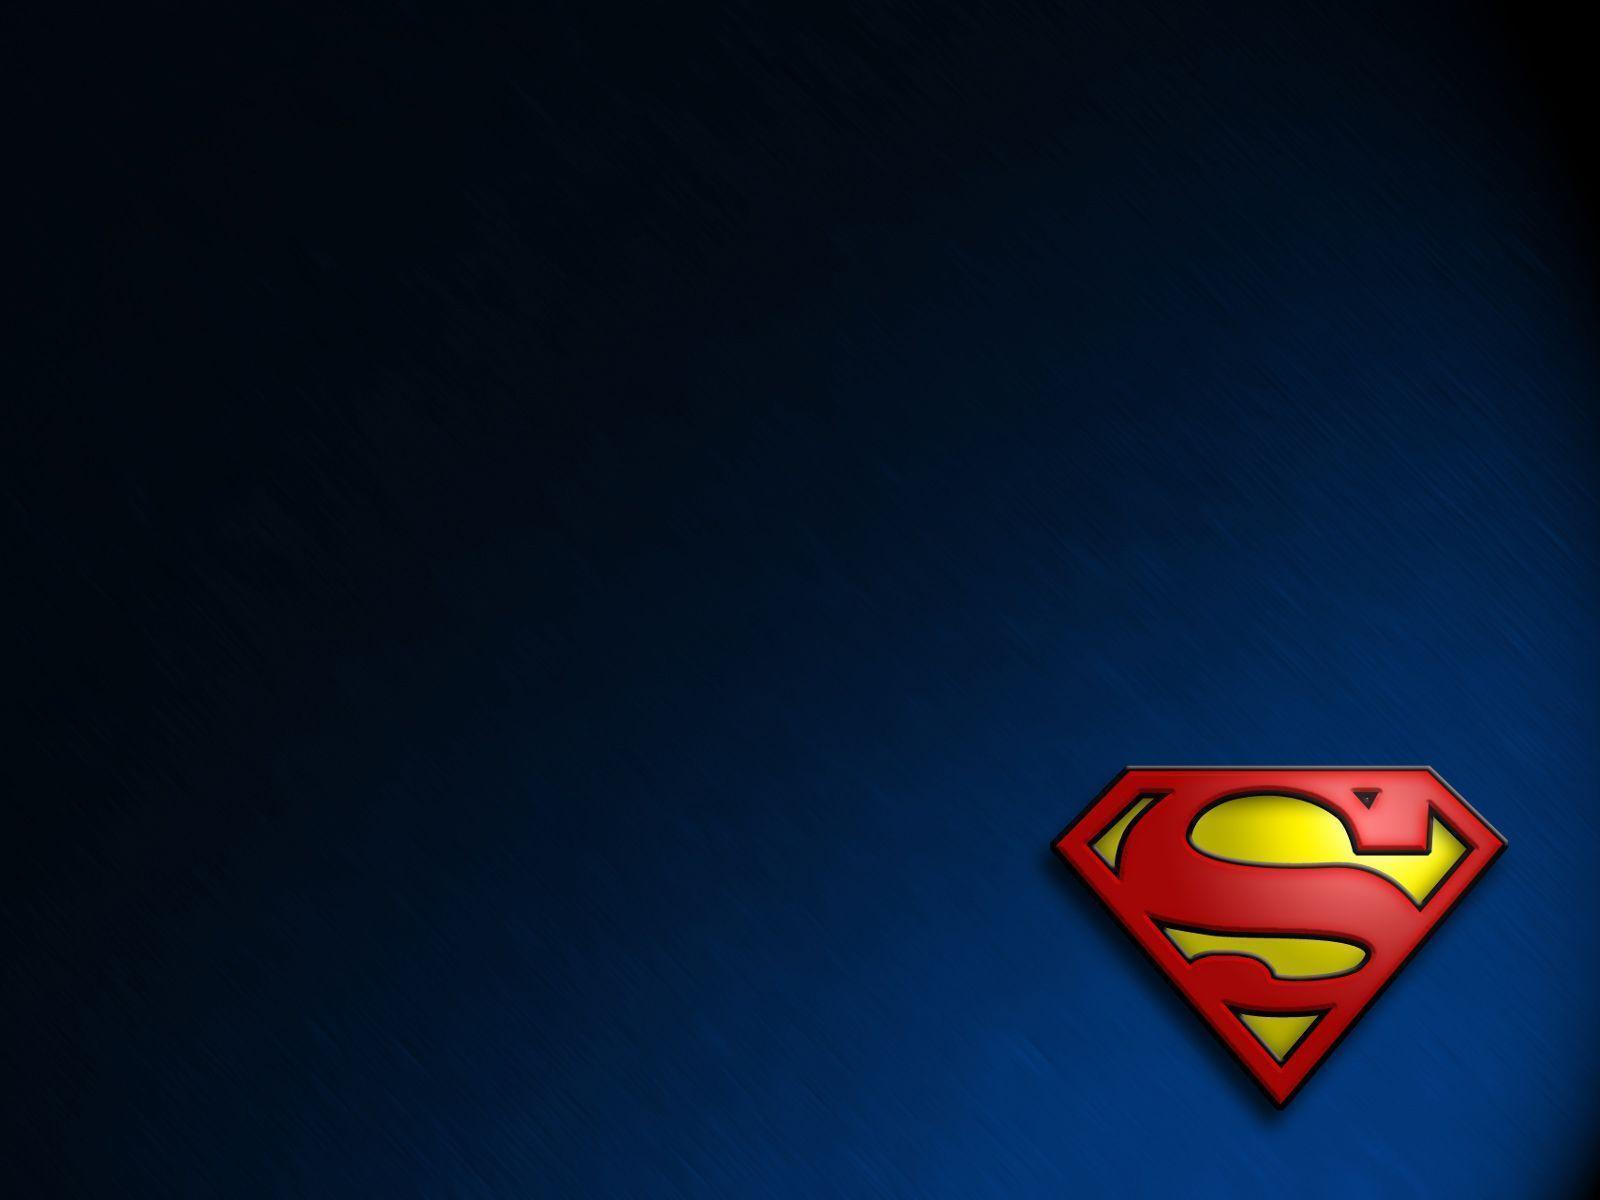 superman logo free wallpaper - photo #2